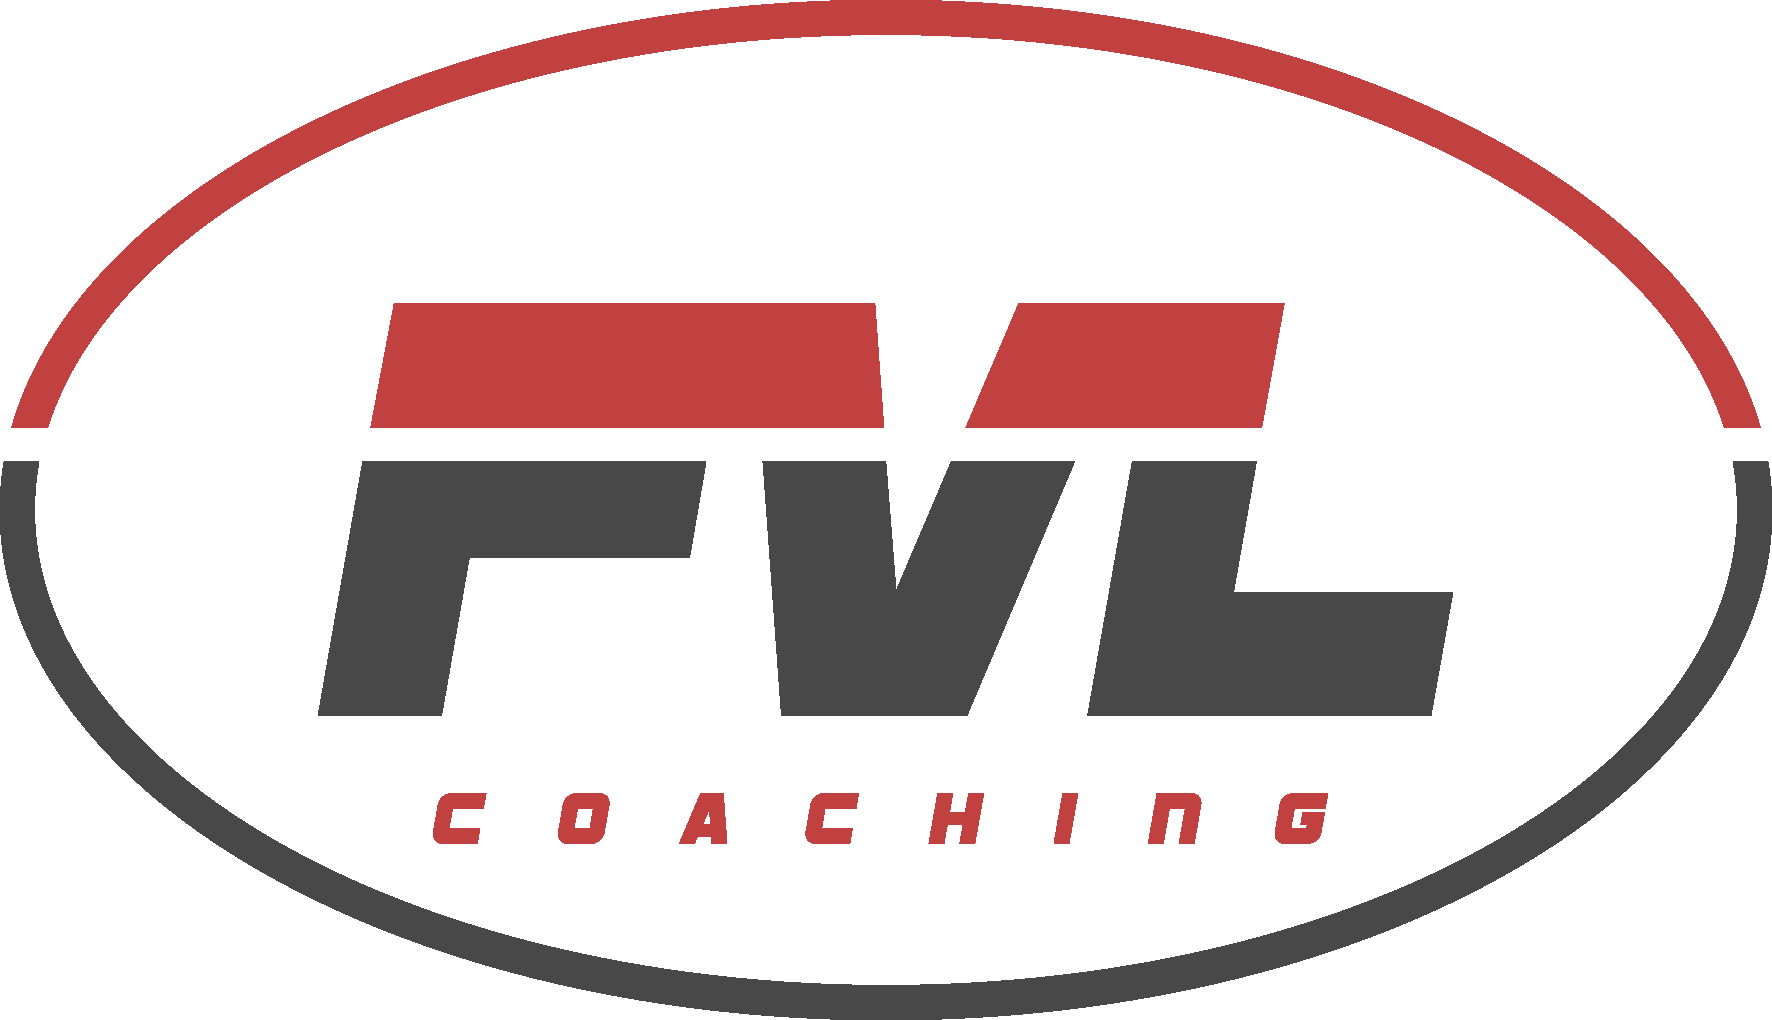 FVLcoaching2016.png